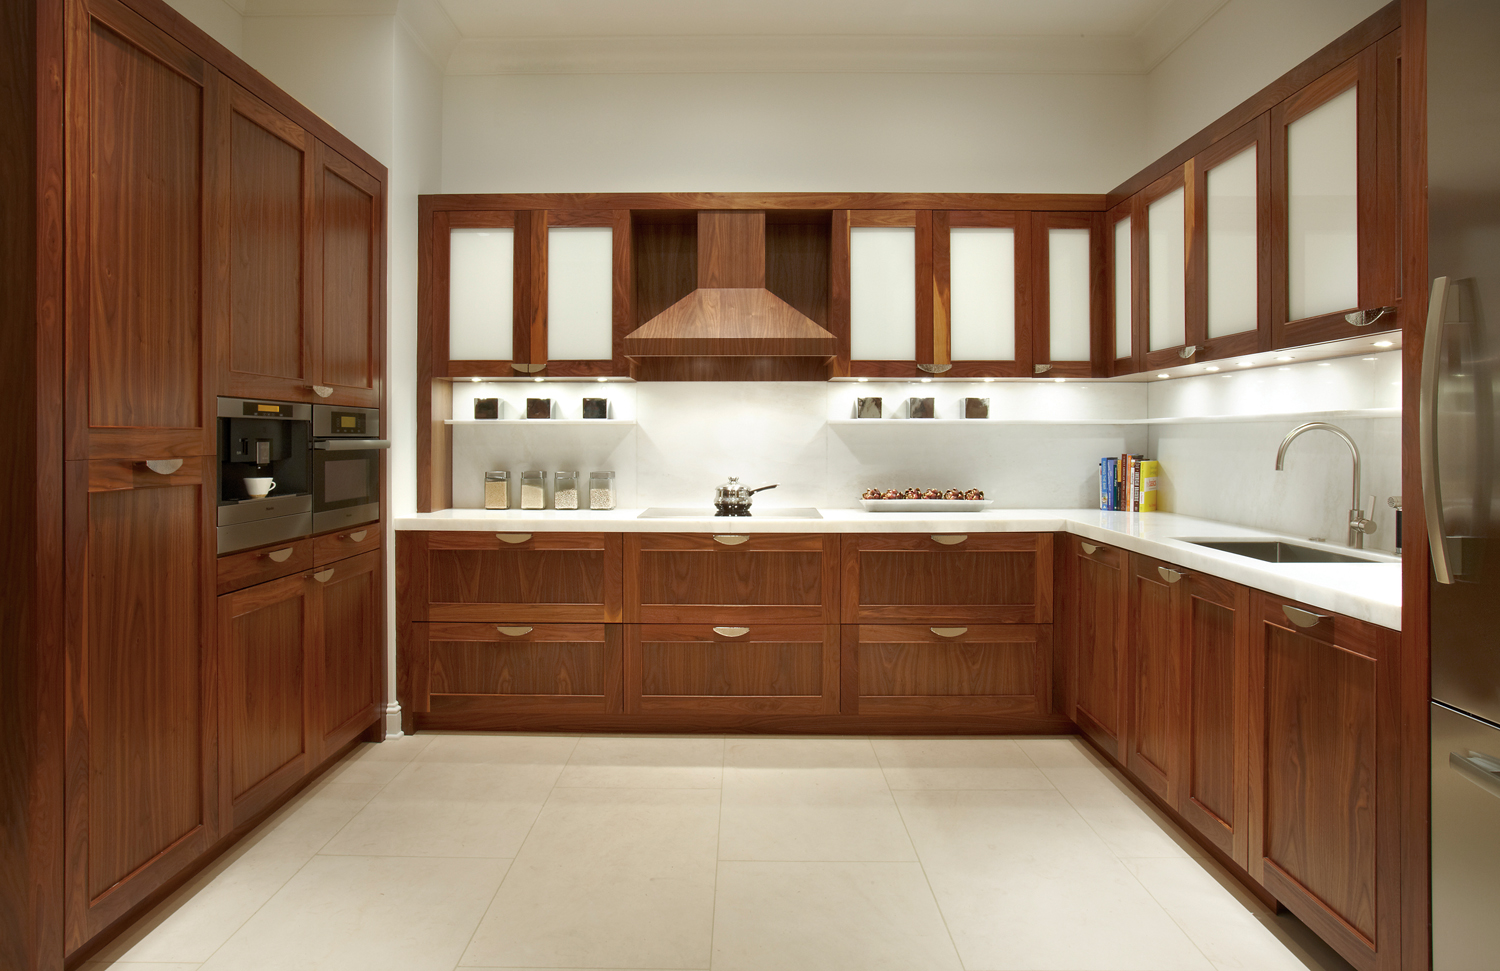 modern kitchen cabinet 5th wheel bunkhouse outdoor page not found plain and fancy cabinetry plainfancycabinetry